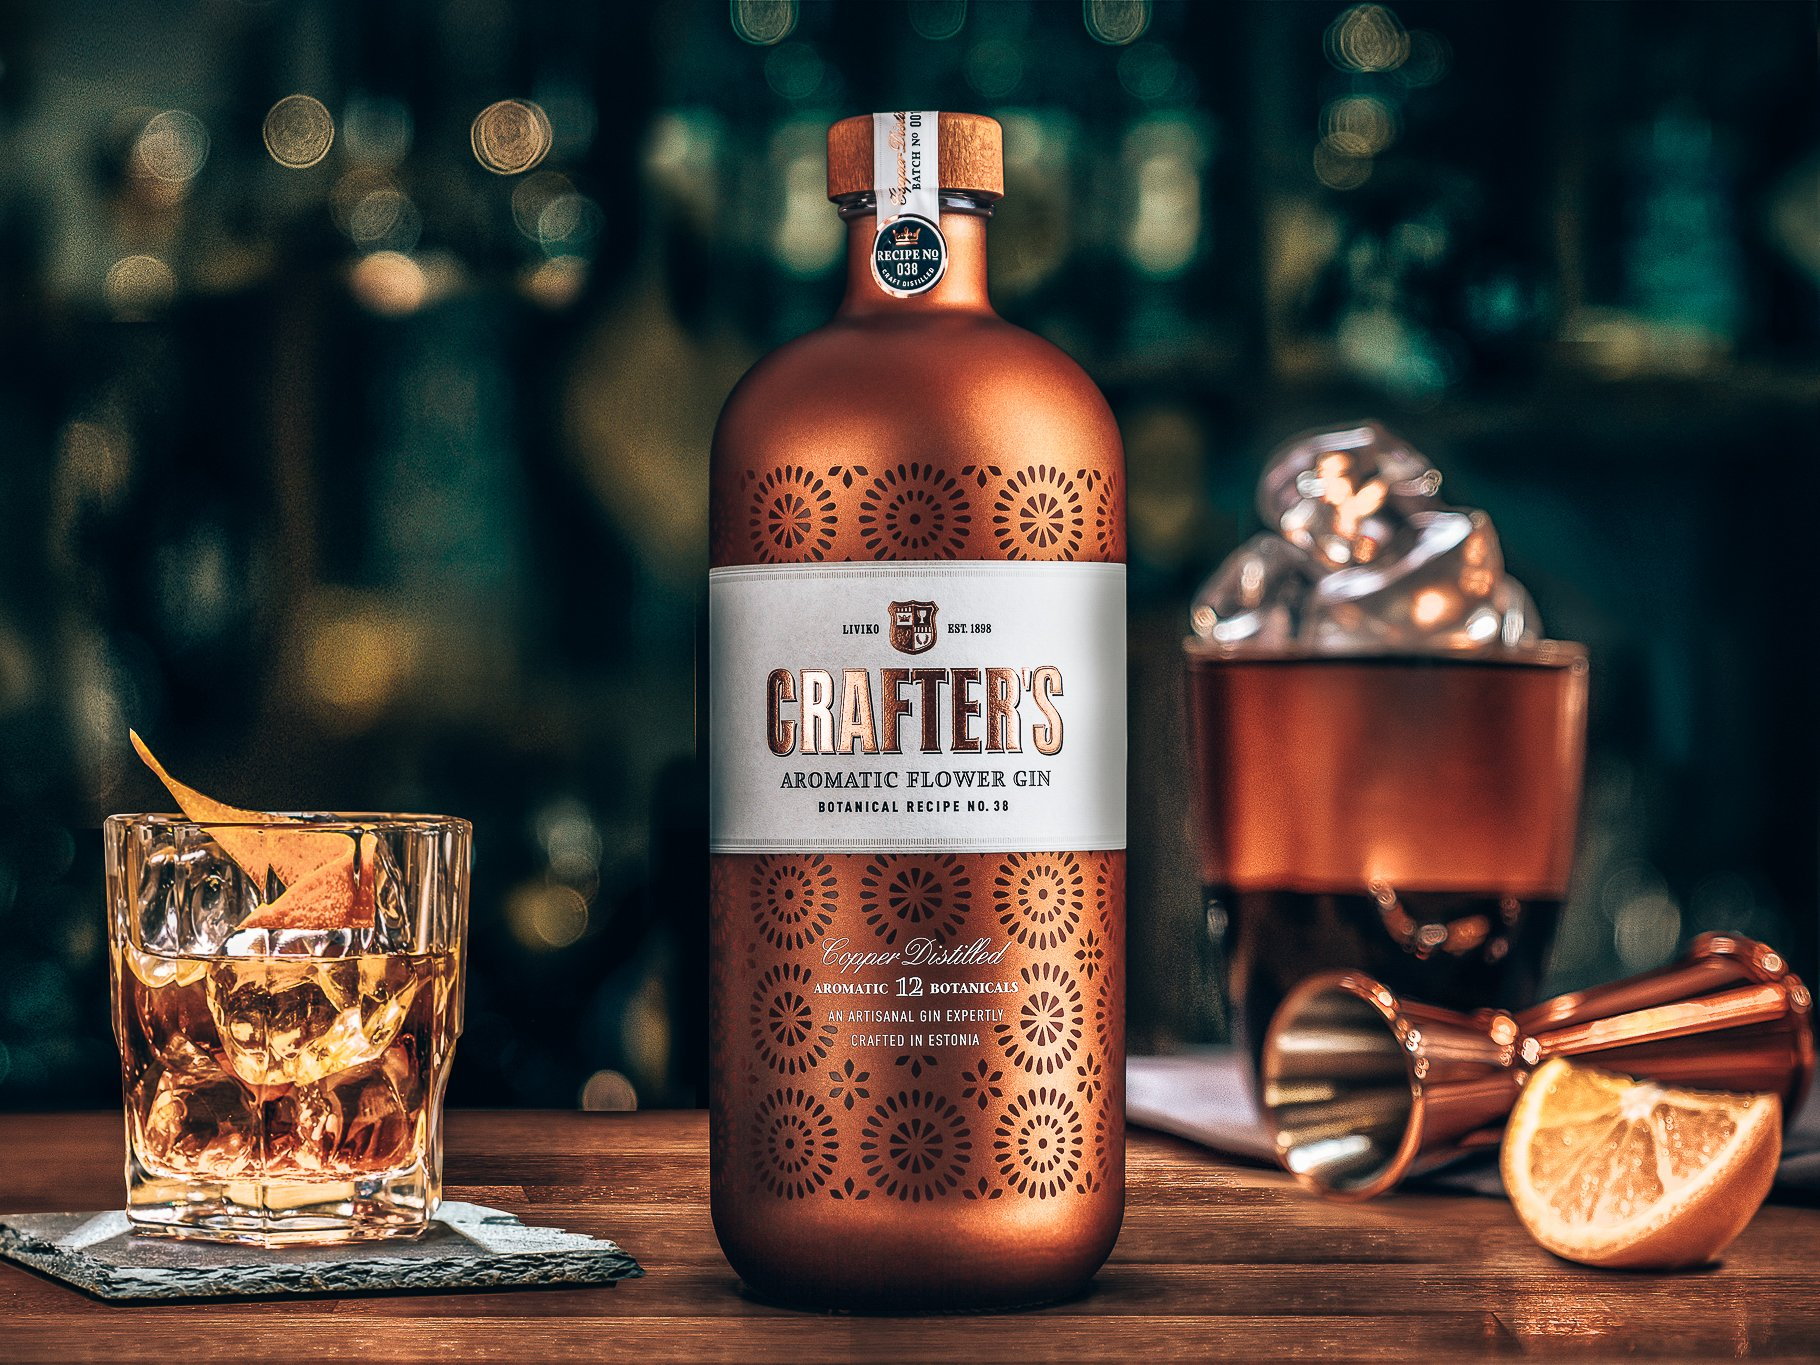 Crafter's Aromatic Flower Gin, gin story, uitgelicht, Alles over gin.